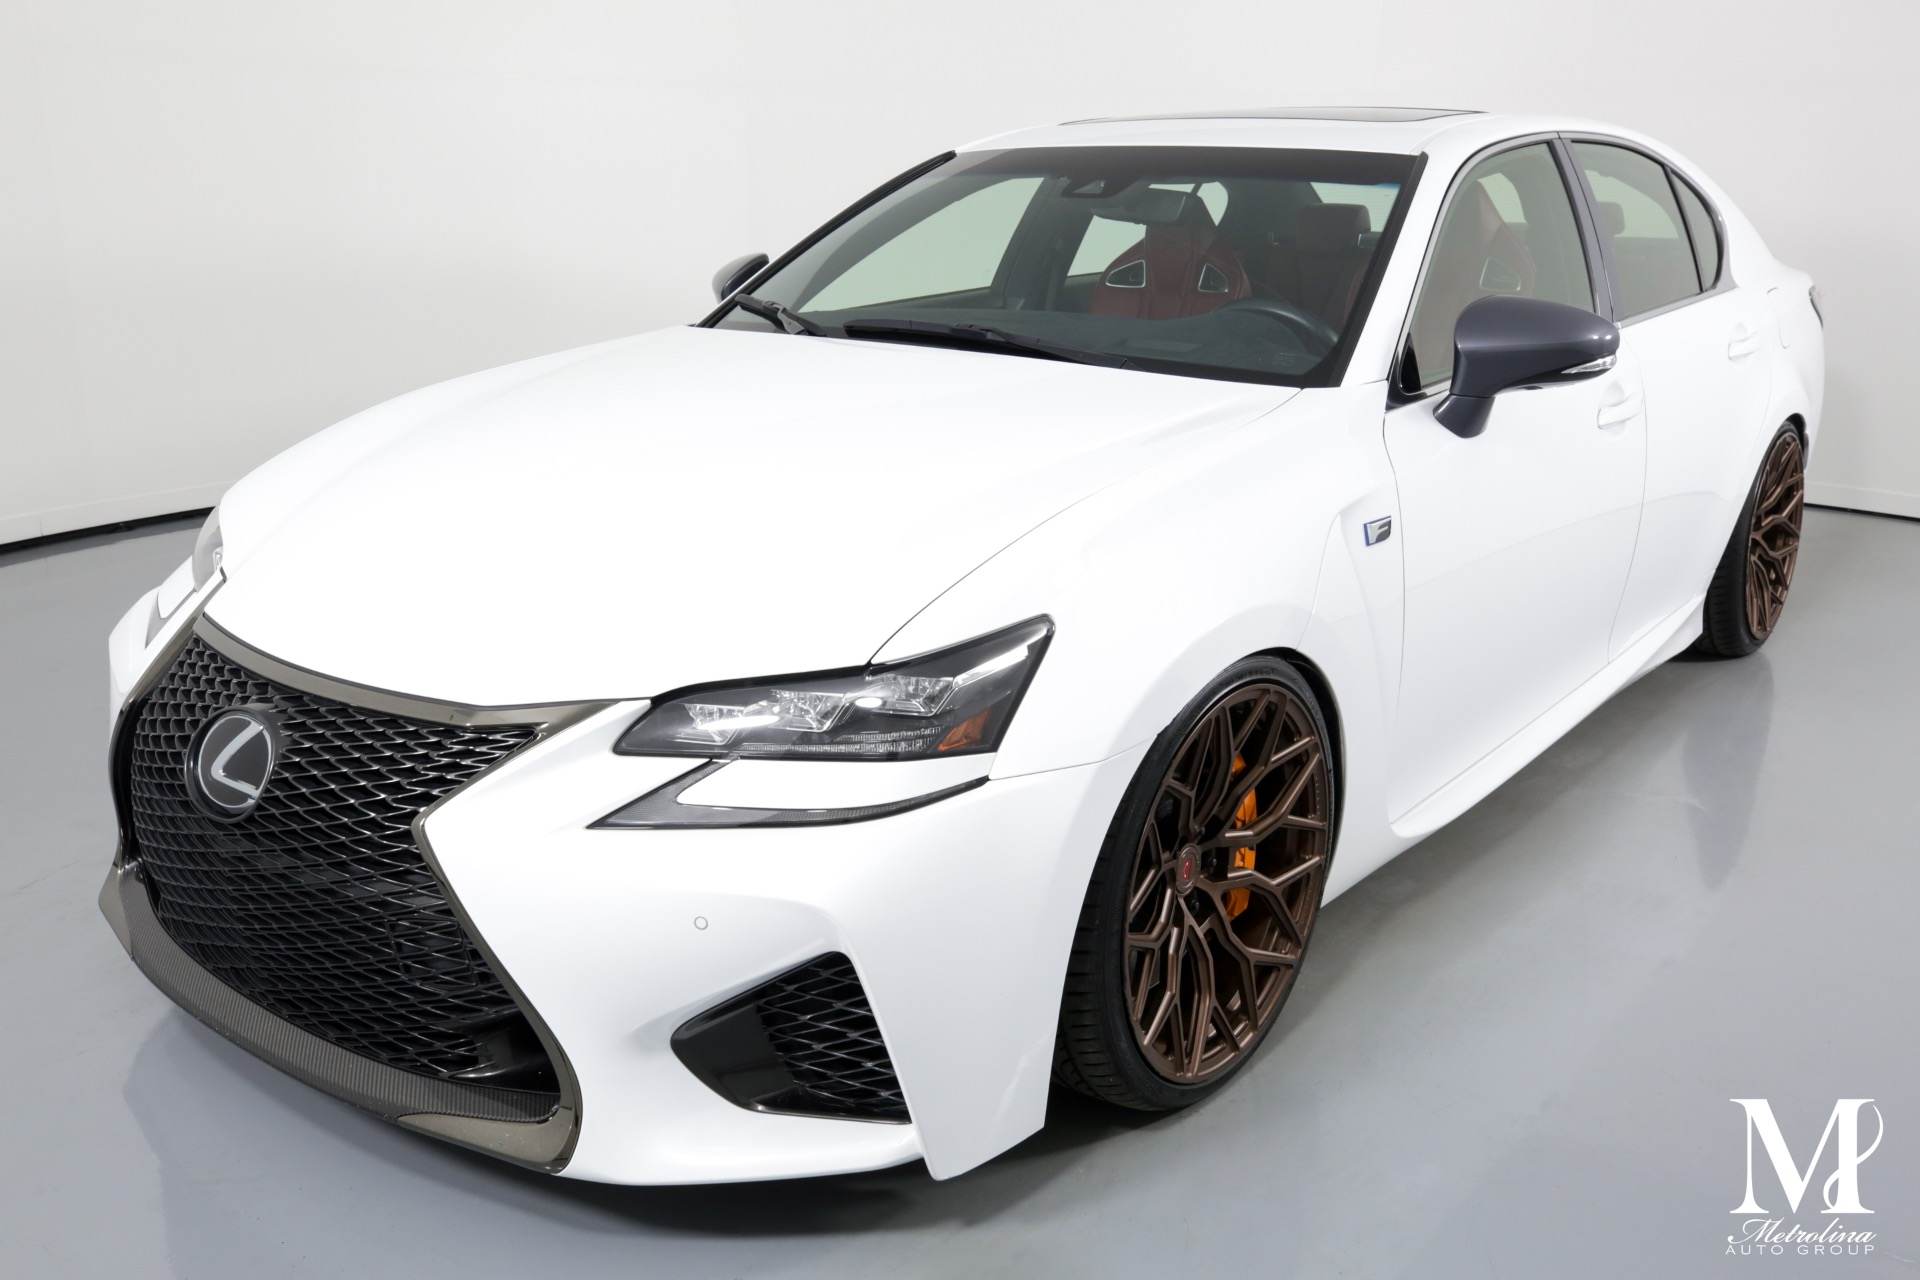 Used 2018 Lexus GS F for sale $61,996 at Metrolina Auto Group in Charlotte NC 28217 - 4